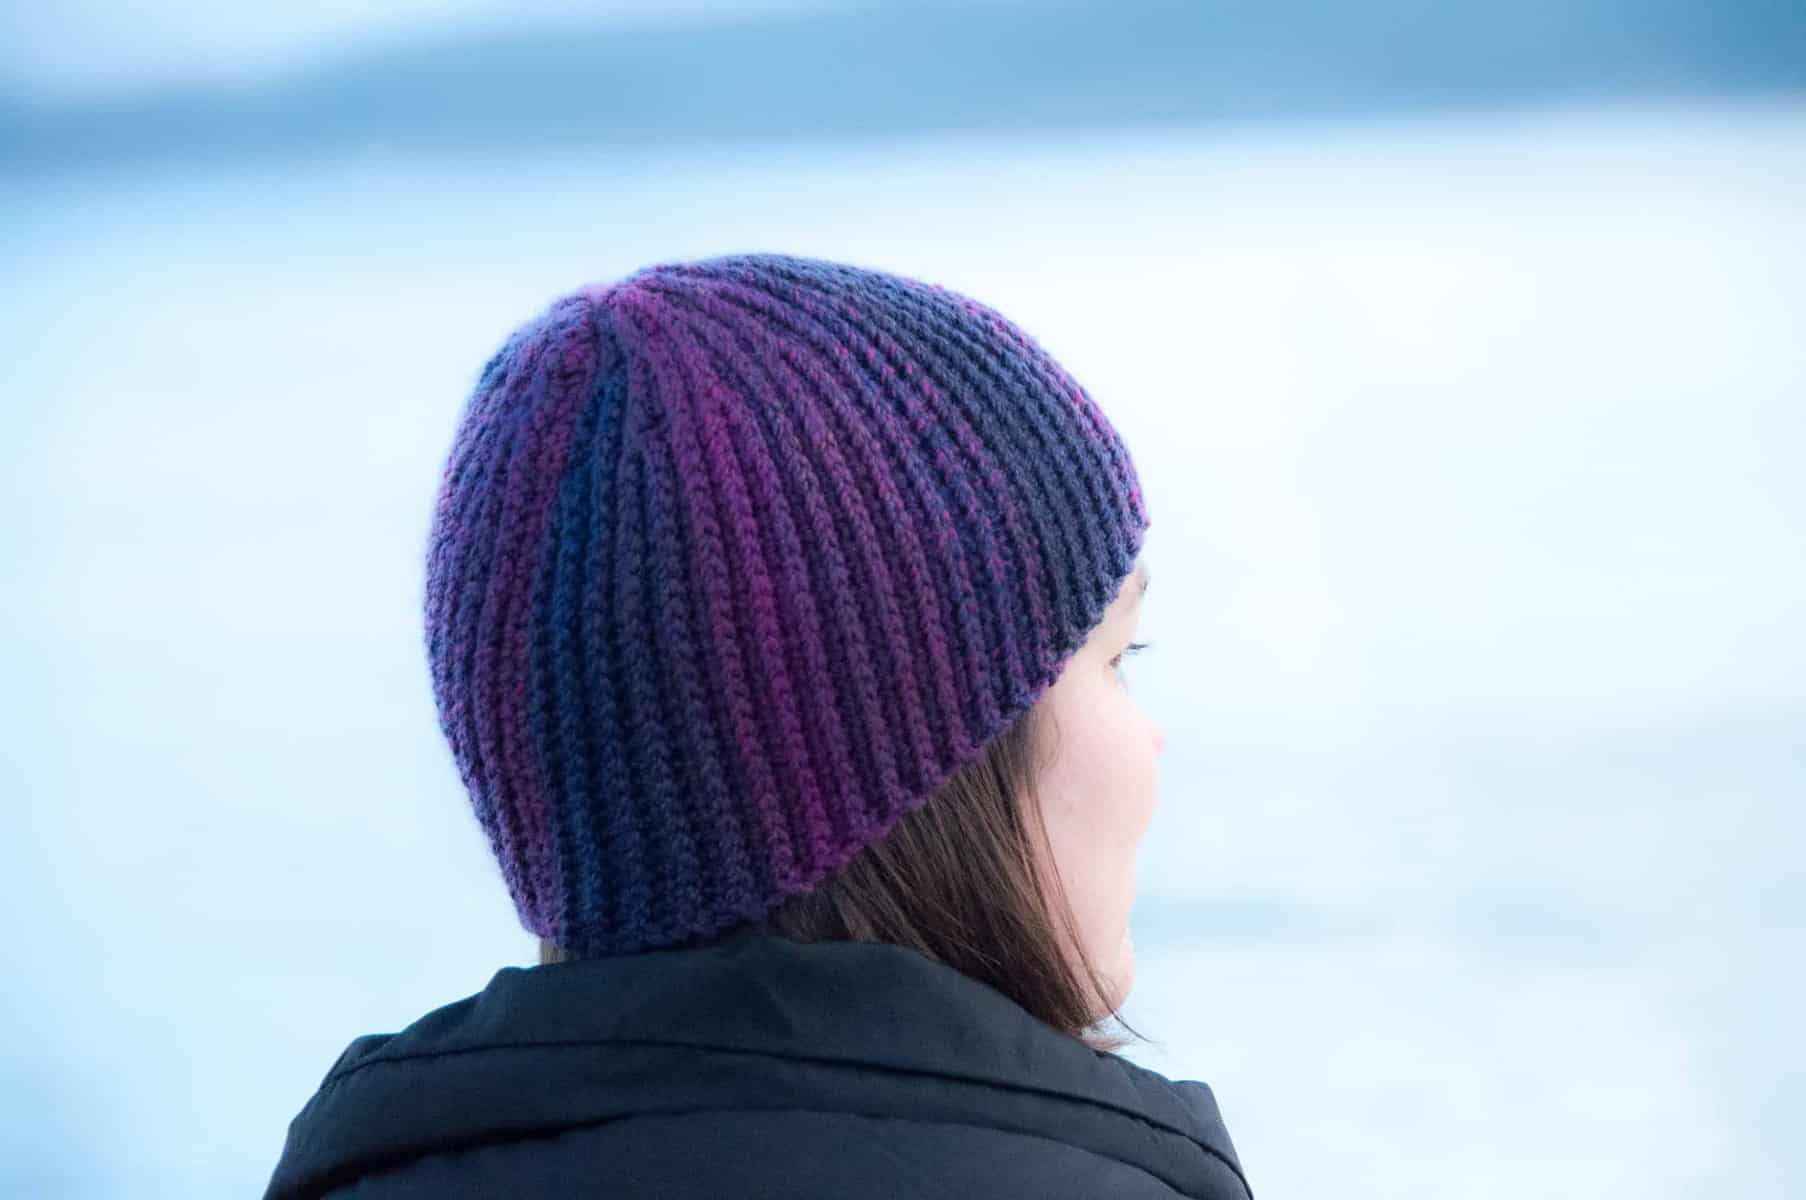 twist & stripe hat - free crochet pattern